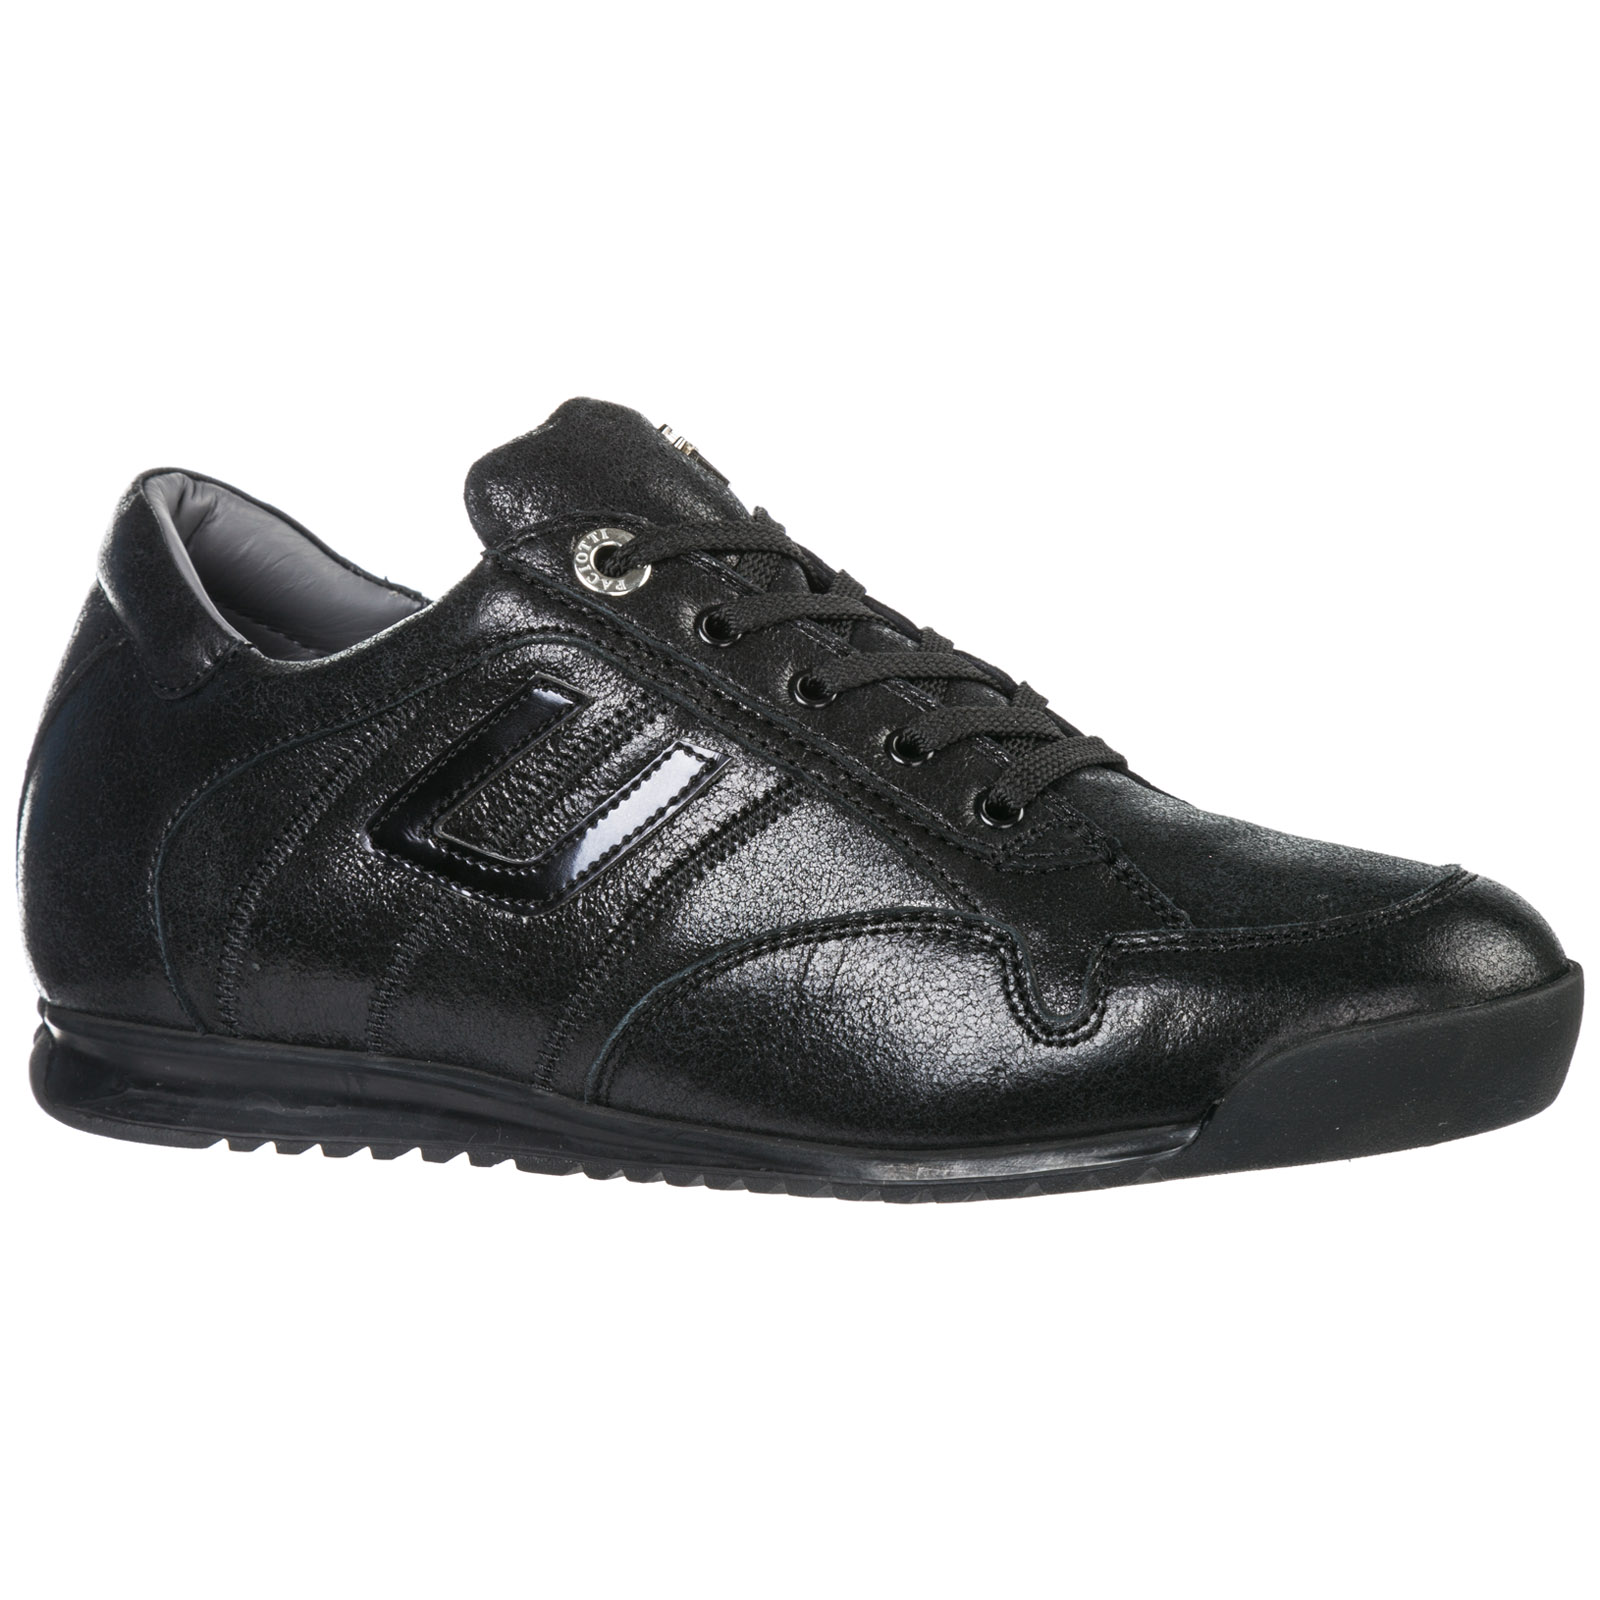 low priced c2f23 e1bf5 Women's shoes leather trainers sneakers